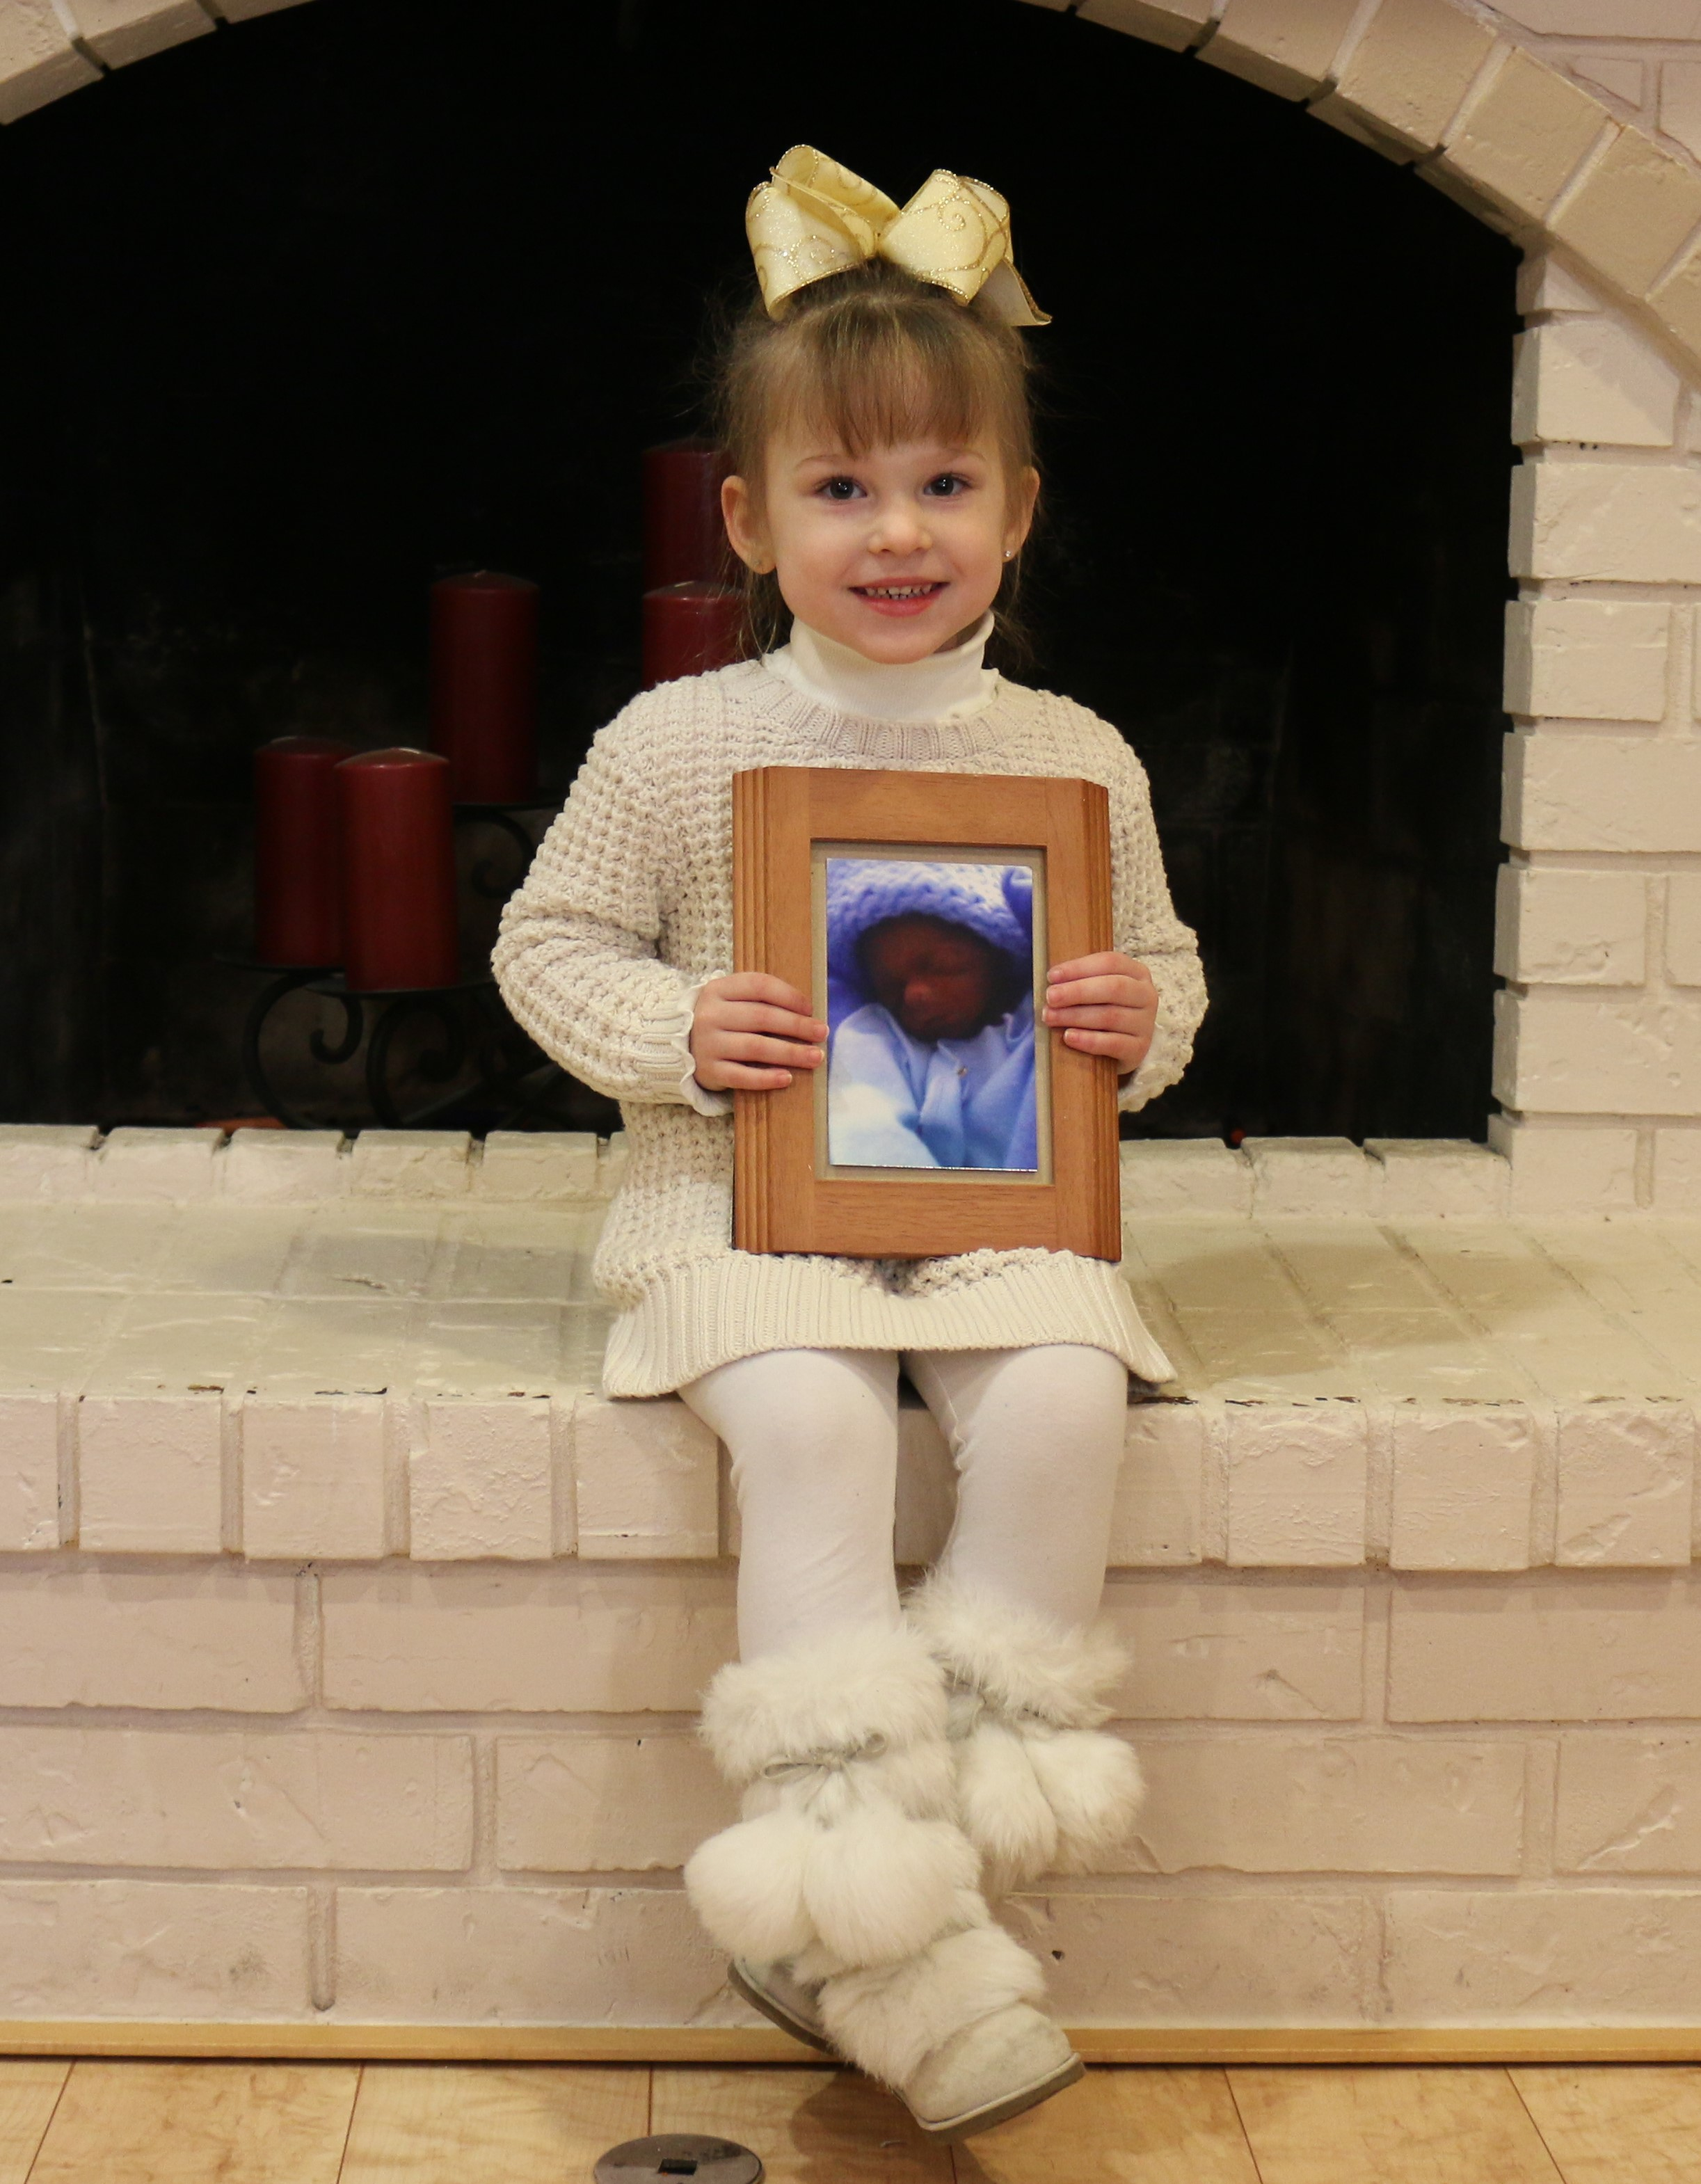 Amanda's daughter holding a picture of her brother